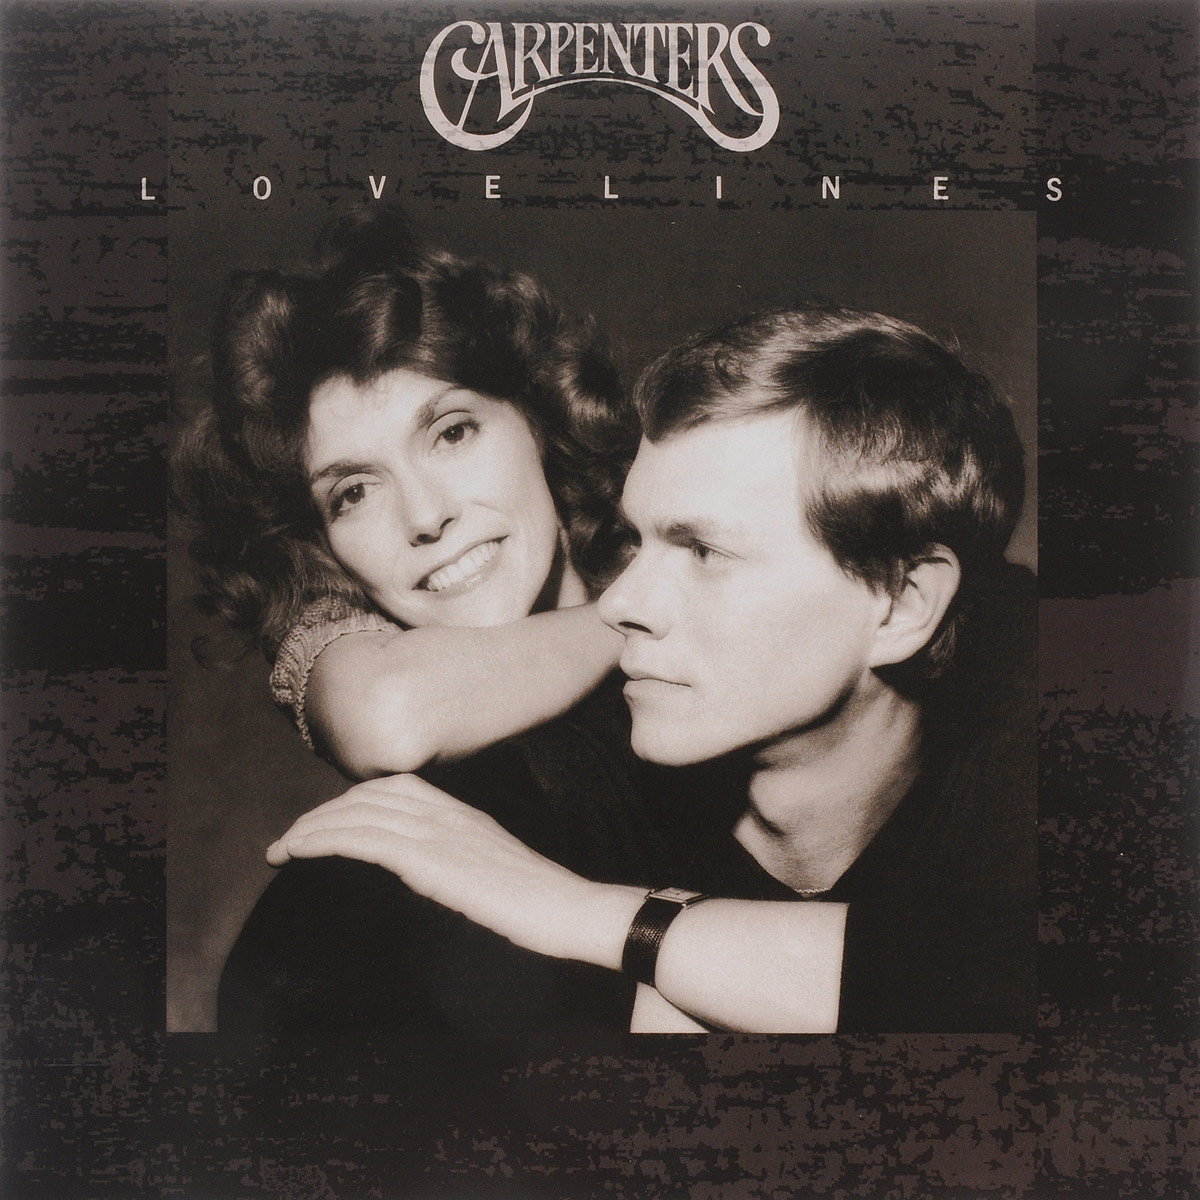 The Carpenters Carpenters. Lovelines (LP) the carpenters carpenters now